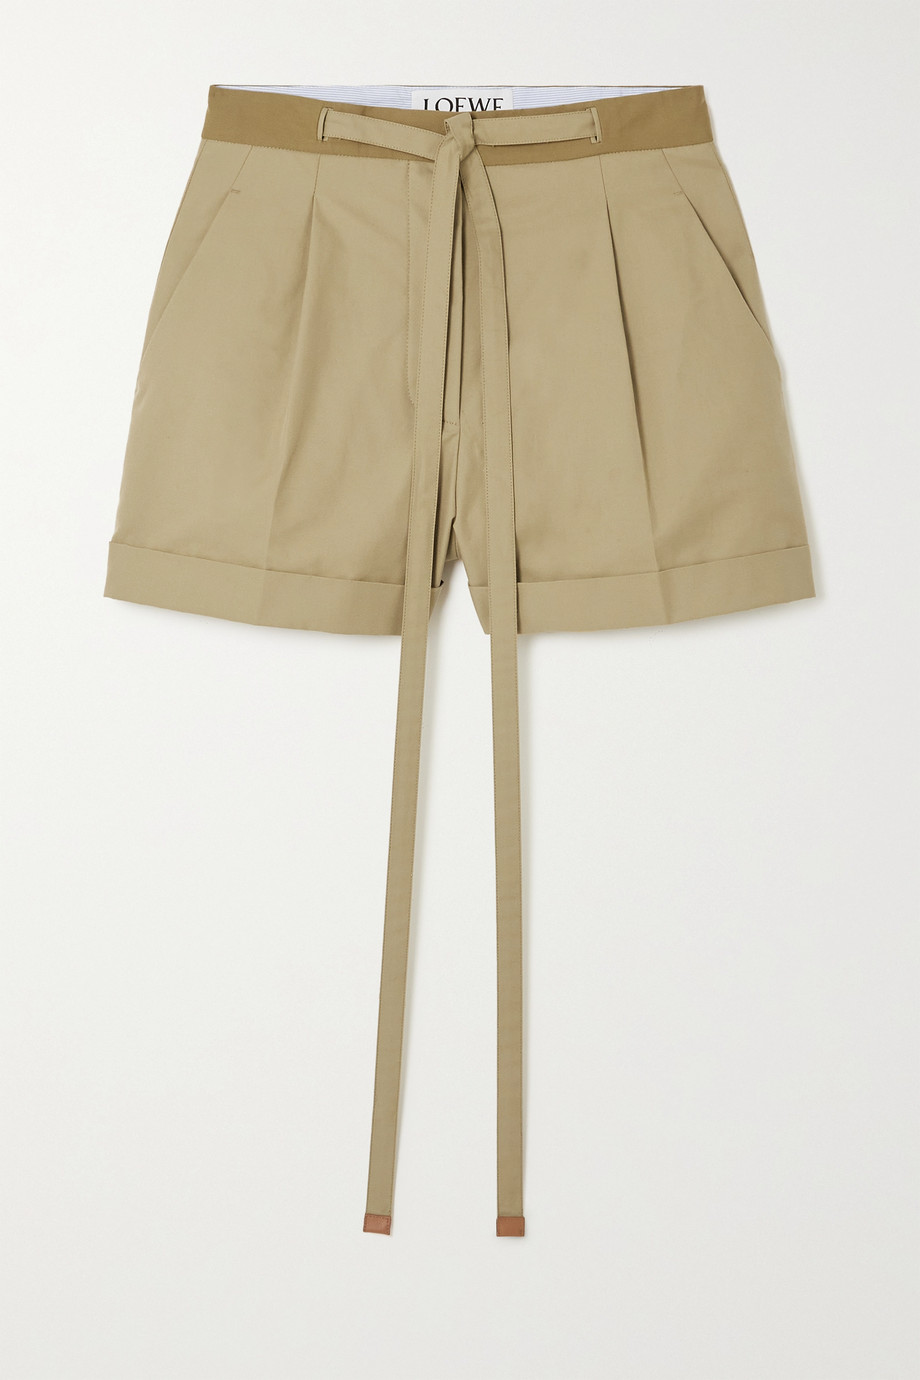 Loewe Leather-trimmed cotton-twill shorts